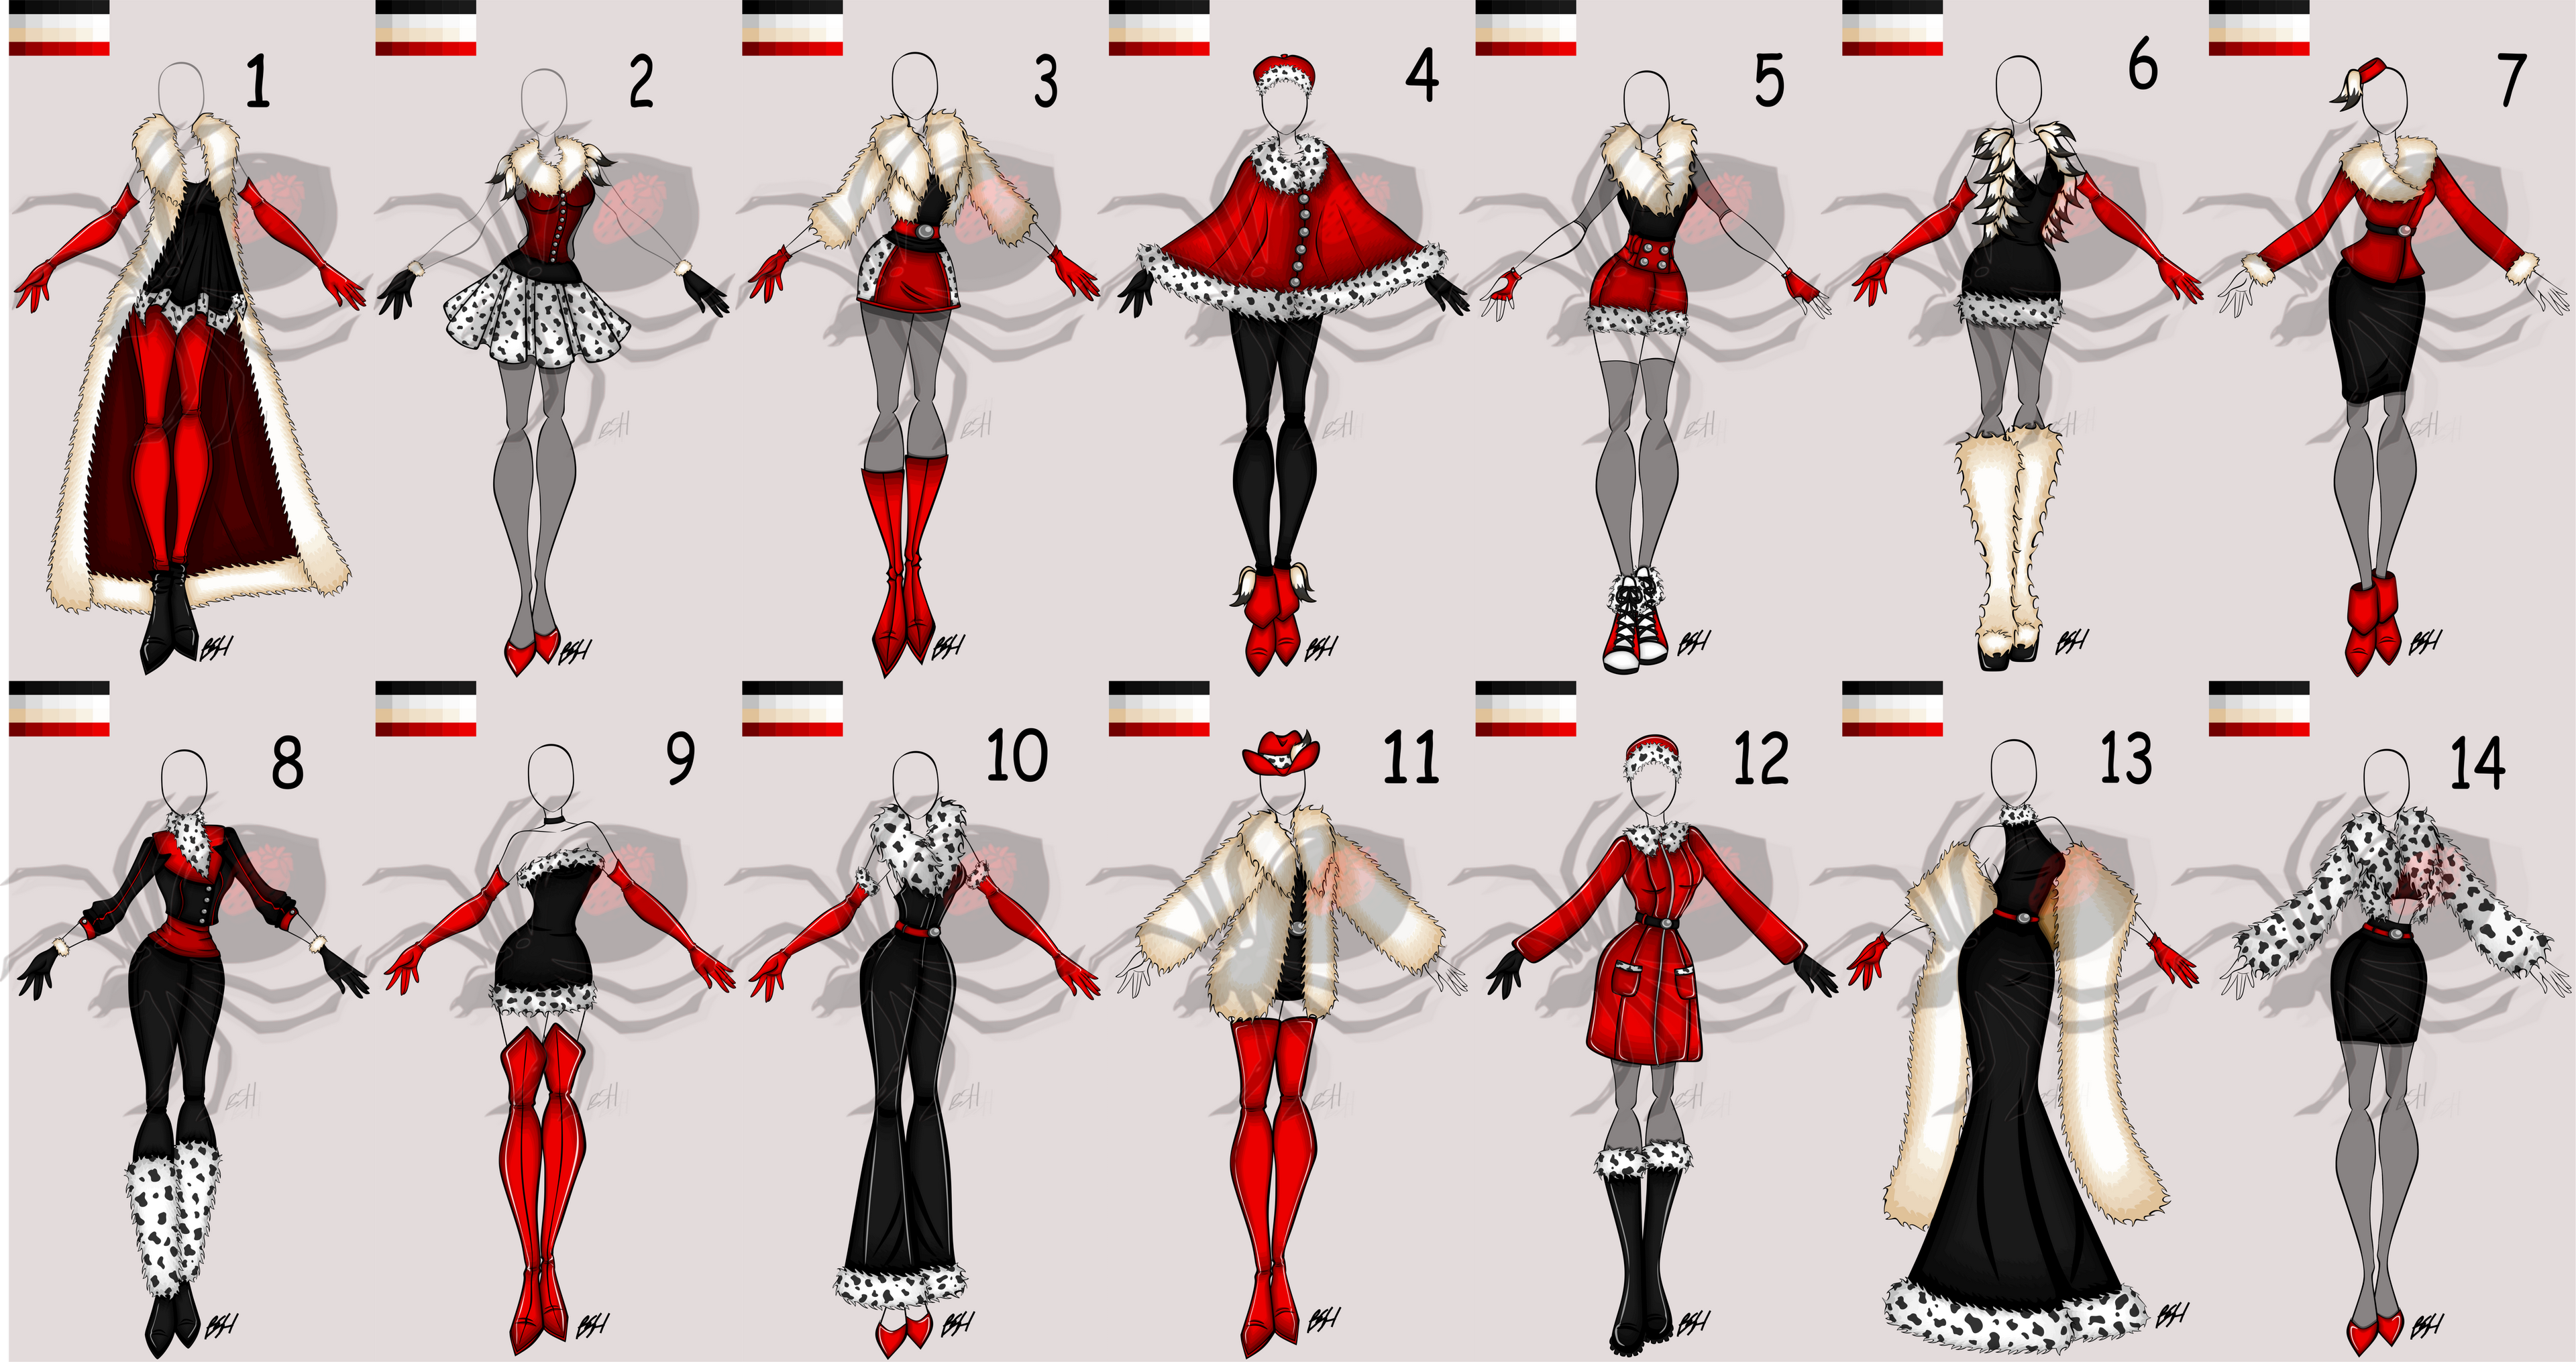 All 14 Outfits Together!